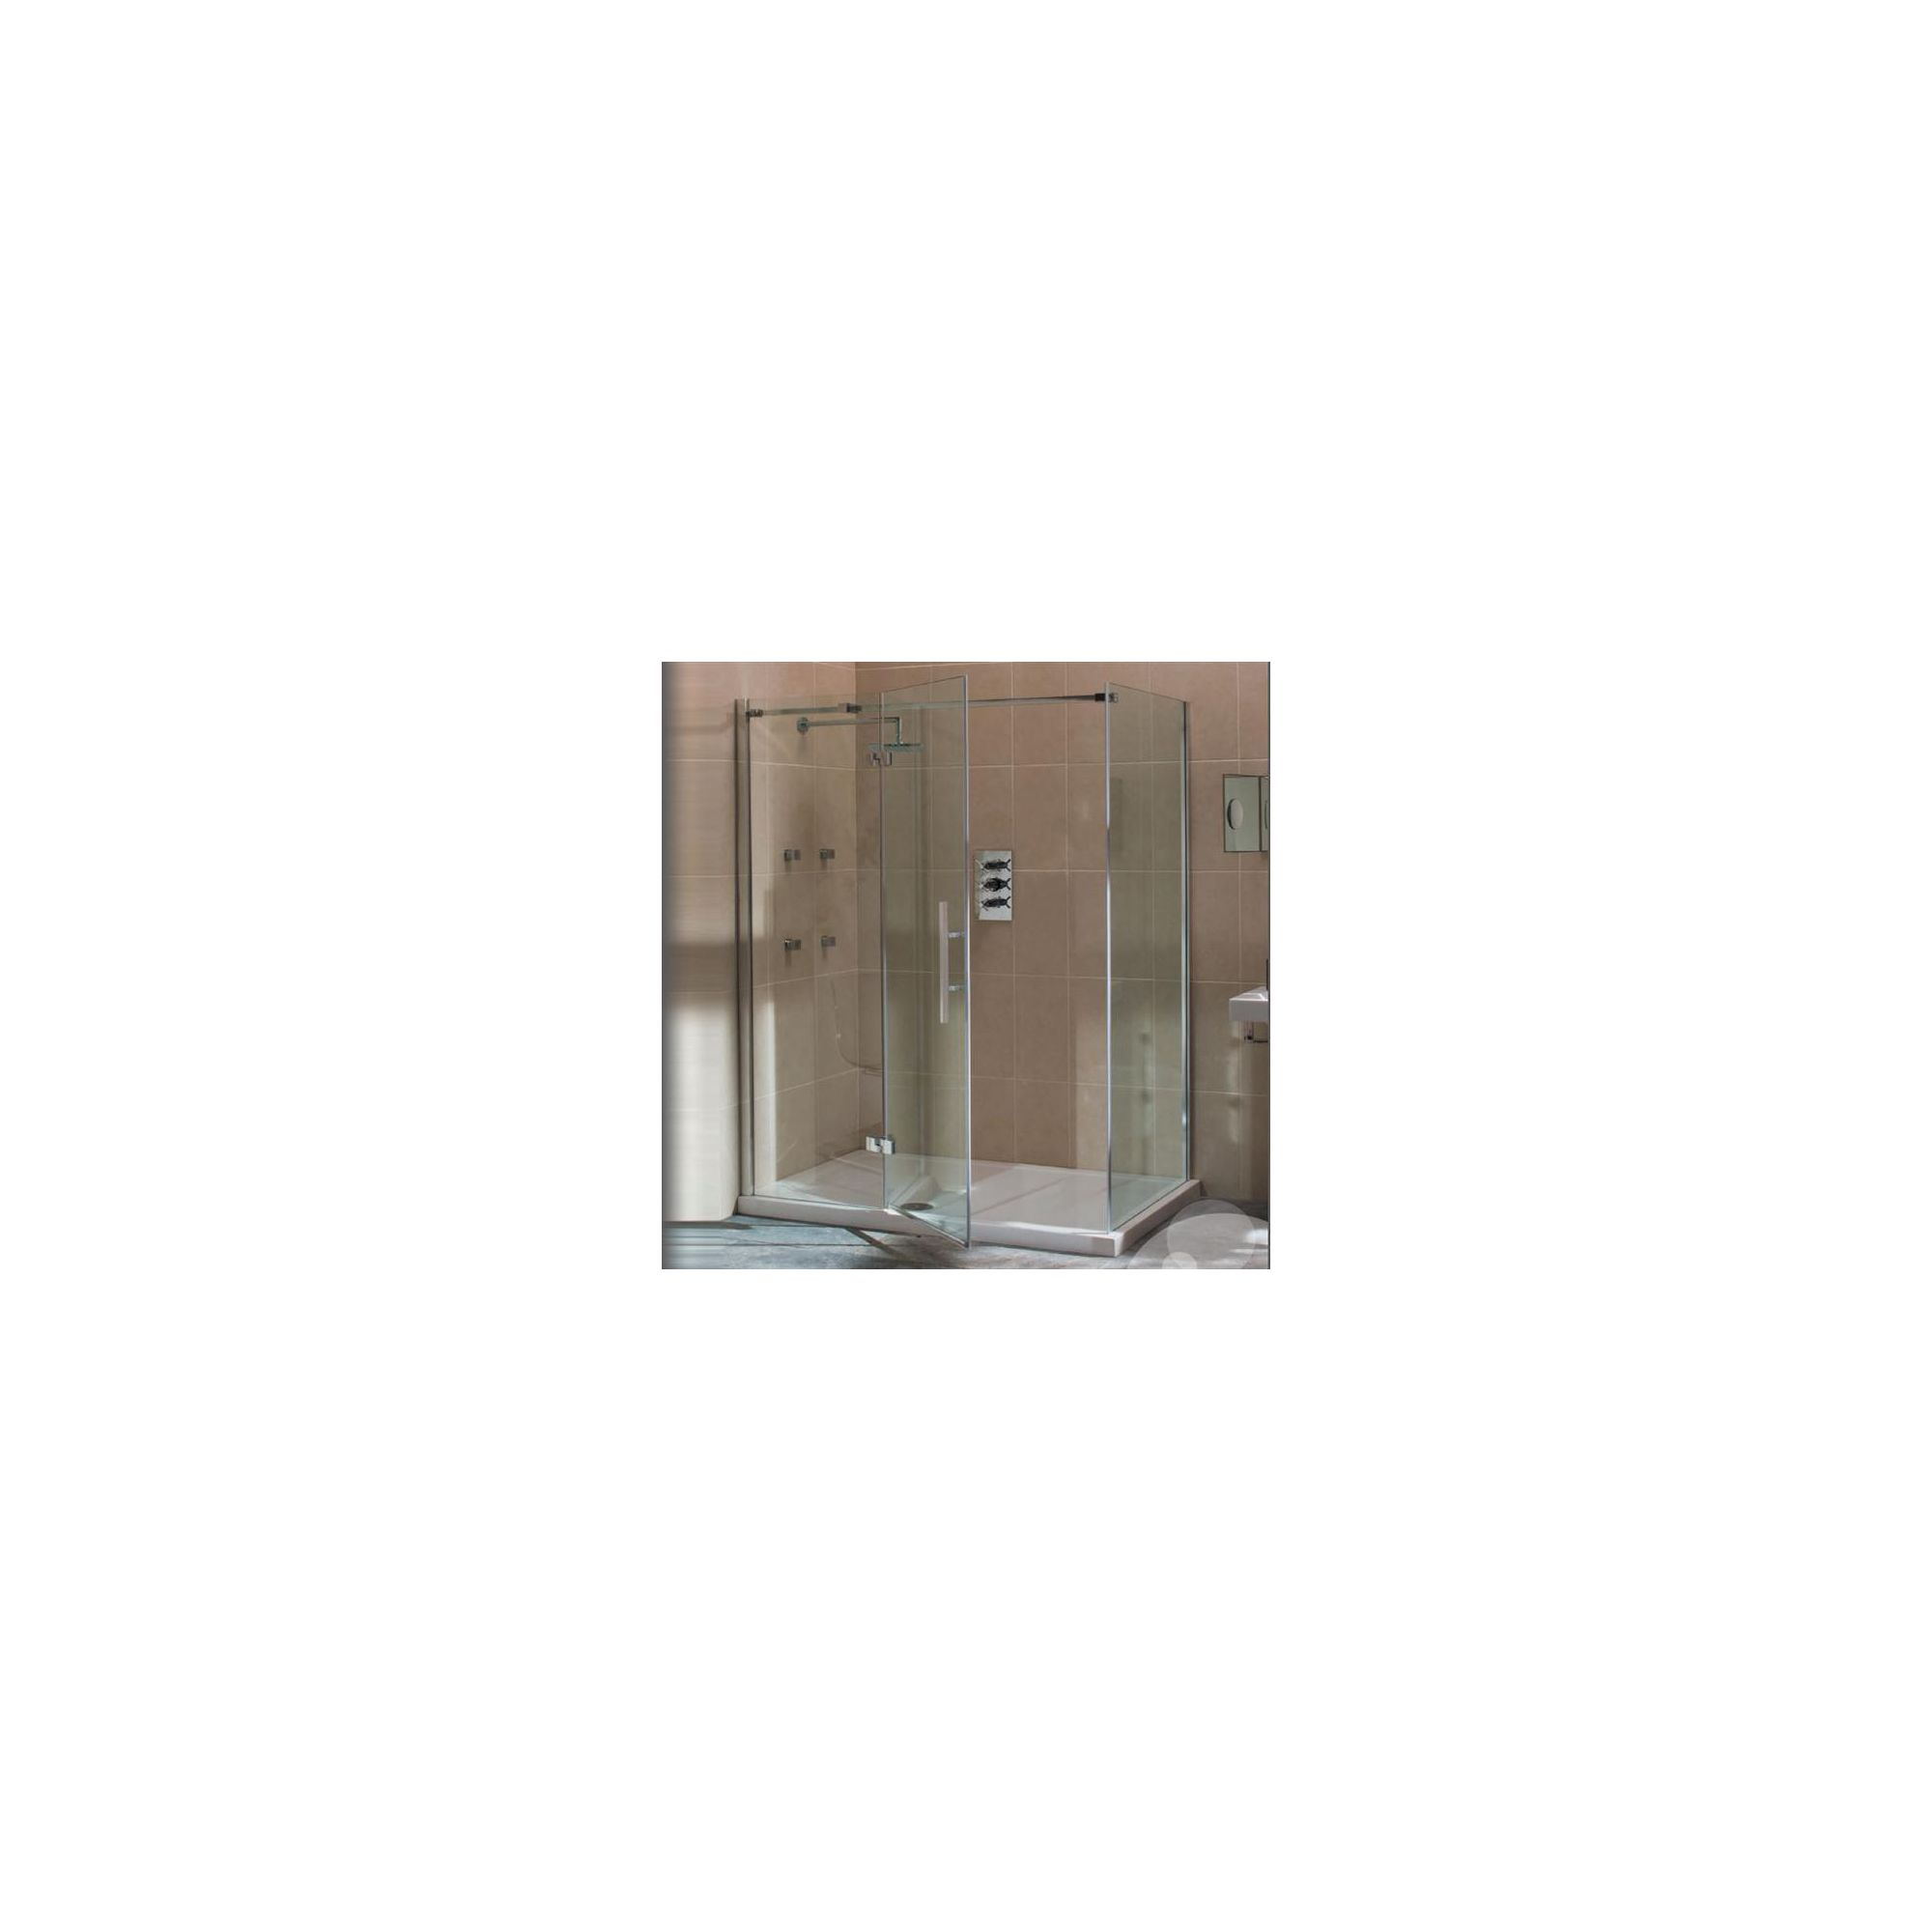 Merlyn Vivid Nine Hinged Door Shower Enclosure with Inline Panel, 1000mm x 800mm, Left Handed, Low Profile Tray, 8mm Glass at Tesco Direct